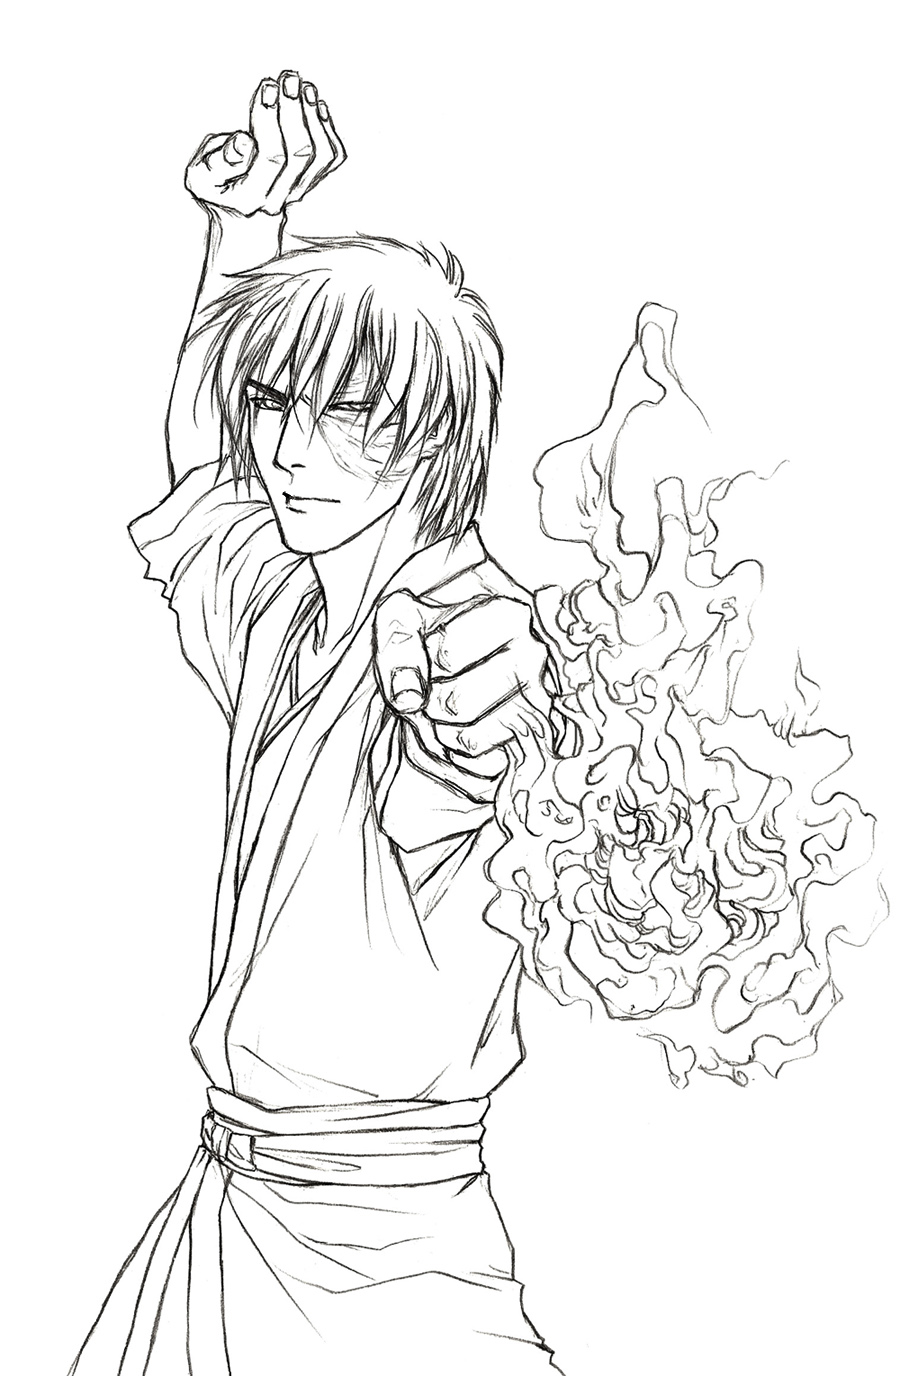 Prince zuko by demon of nirvana on deviantart for Avatar the last airbender coloring pages